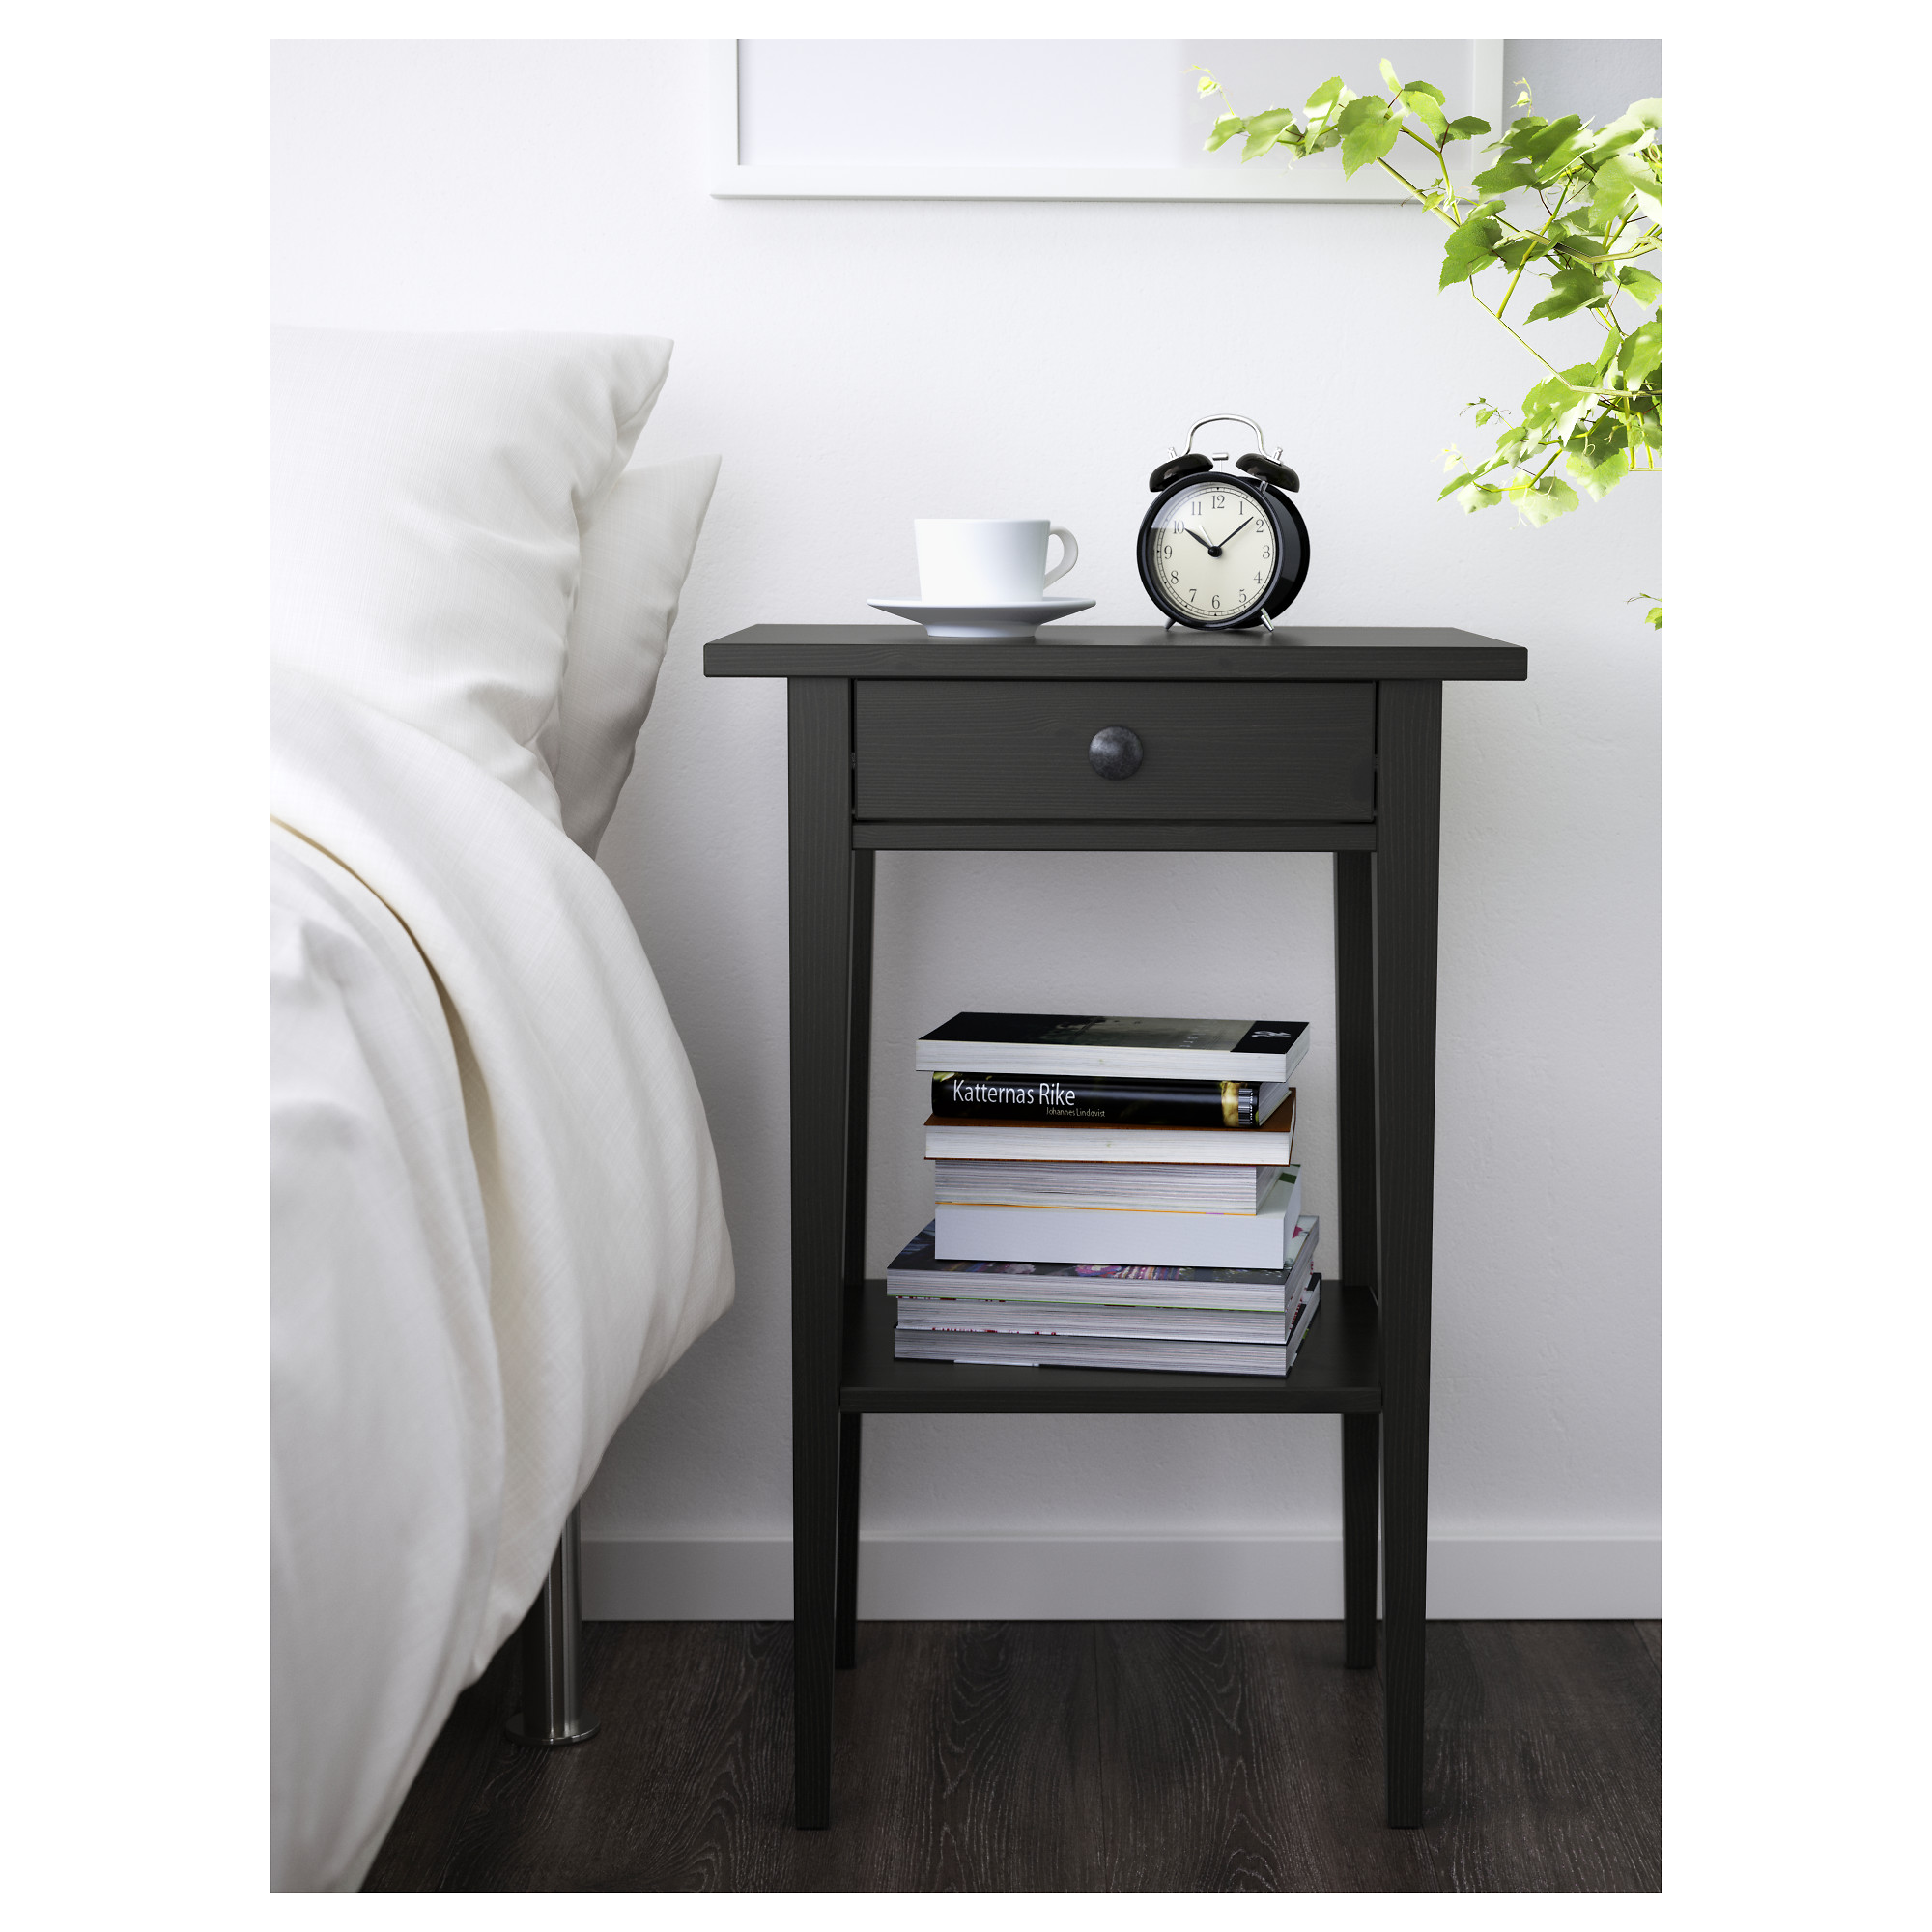 night stand tables mid century laeti mainstays locker dresser ikea hemnes nightstand stands locking accent tarva clearance wall mounted nite rast timmy table black marble top